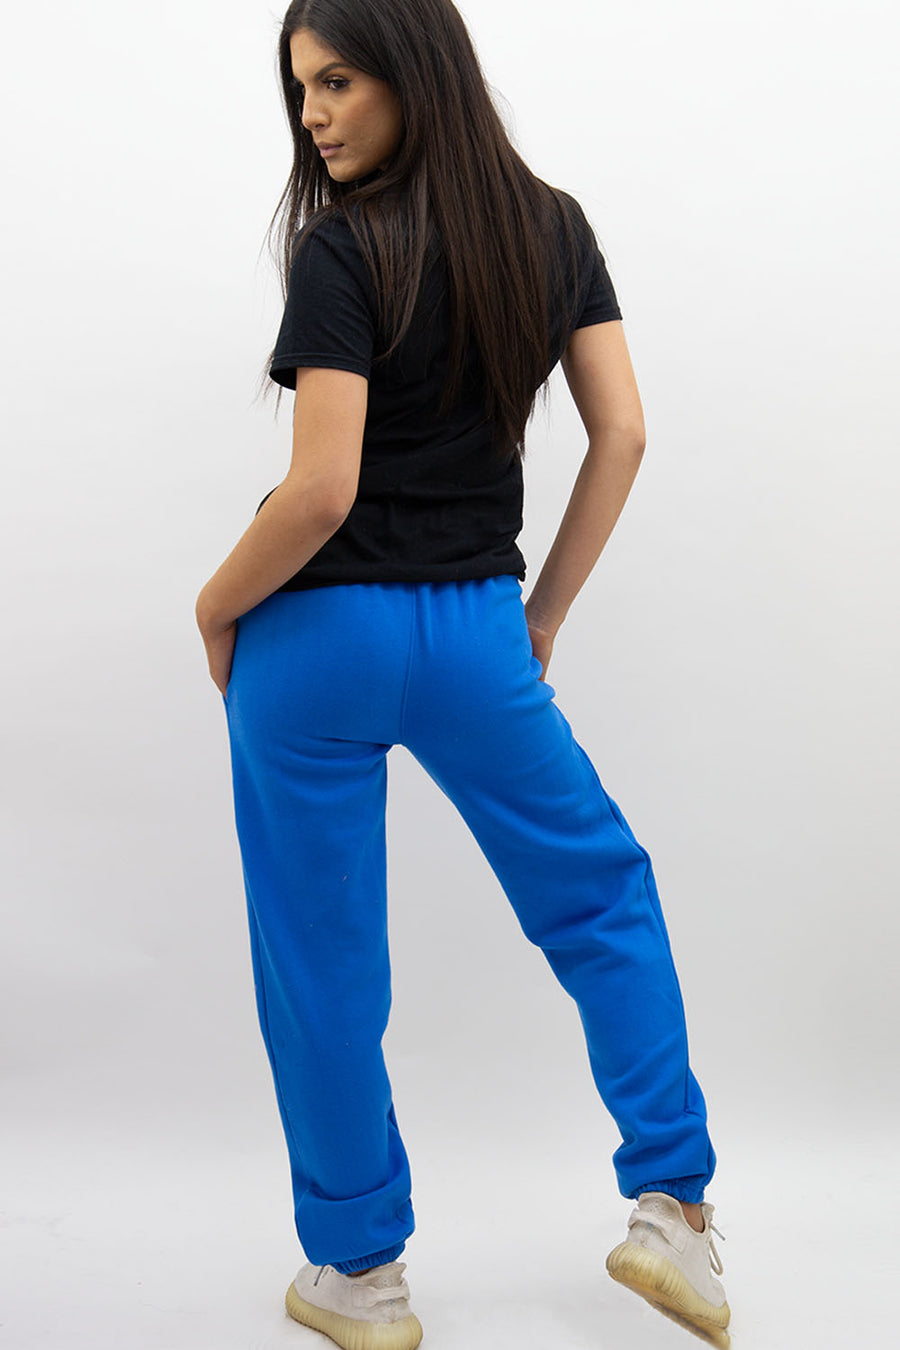 Royal Blue Casual Oversize Joggers Loungewear - Gloria